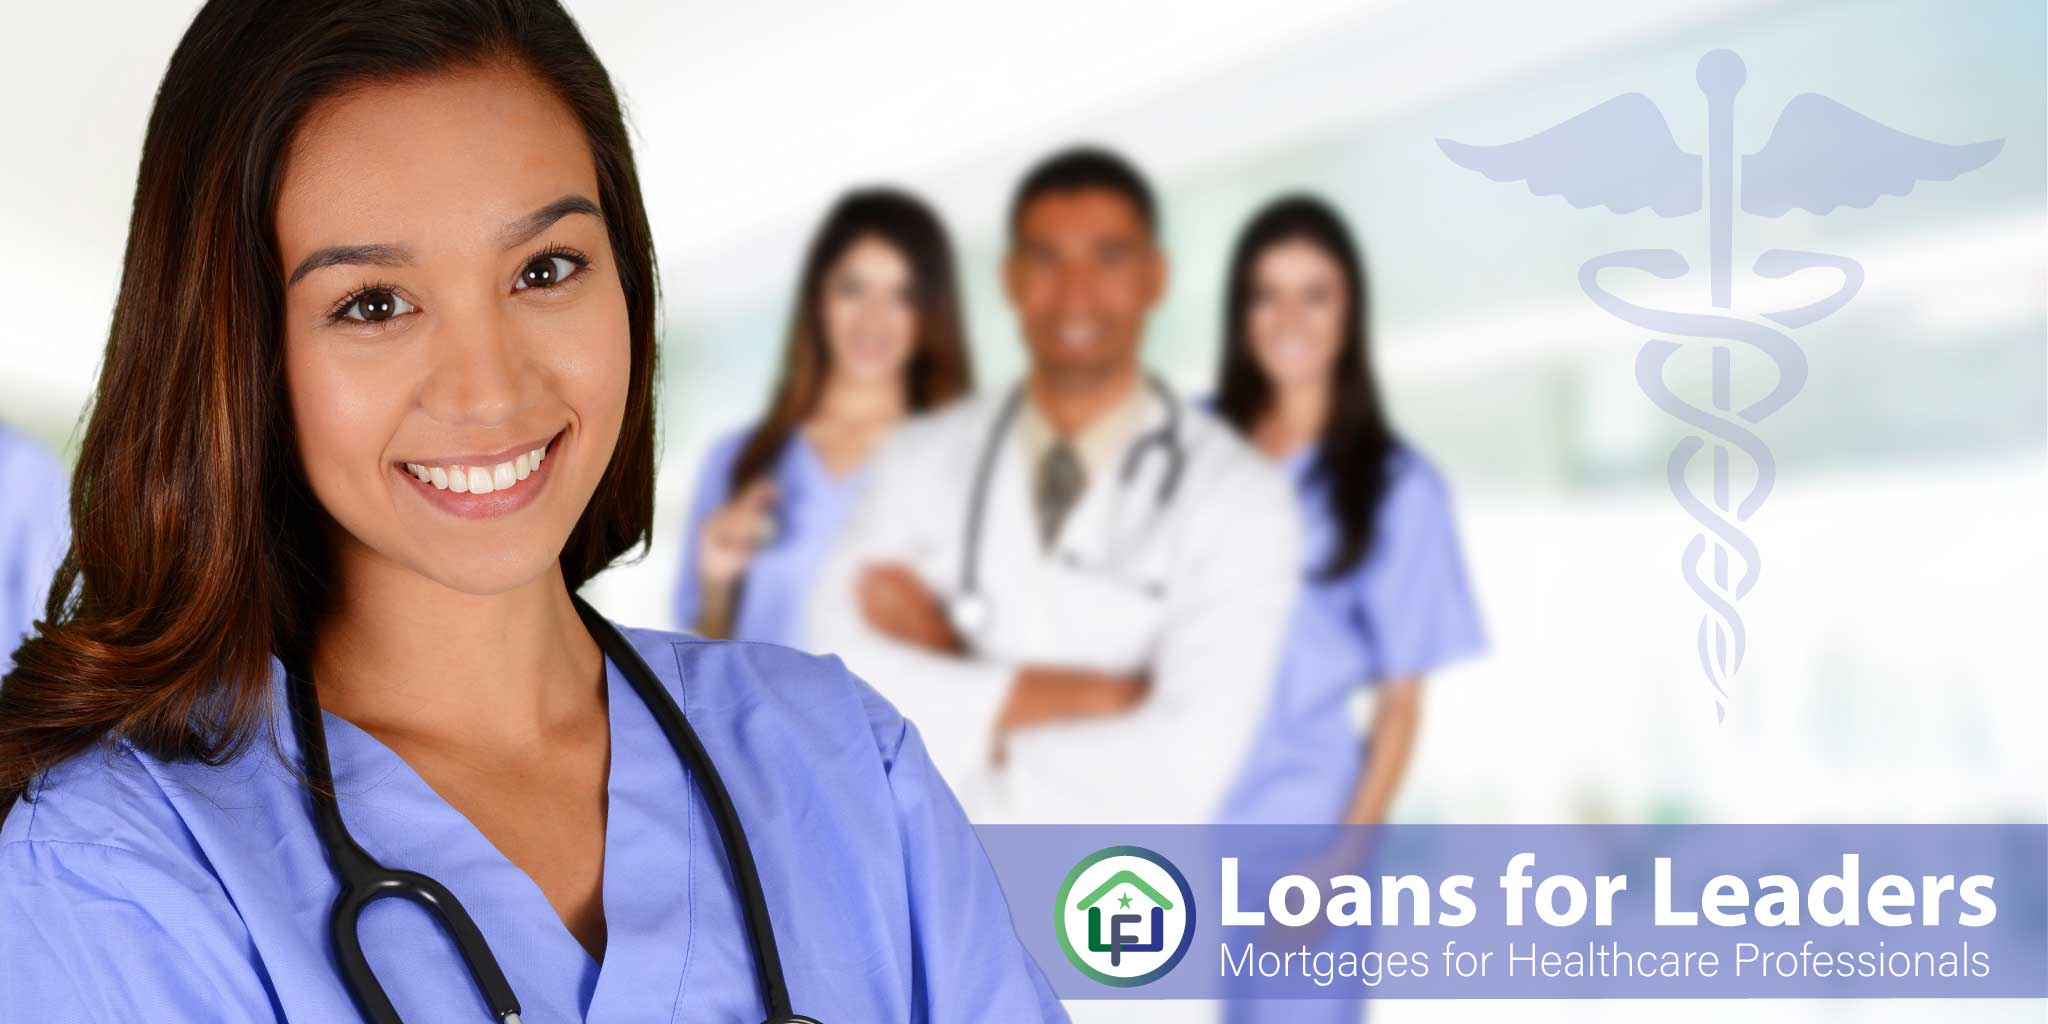 Loans for Leaders - A Home Loan Program for Healthcare Professionals